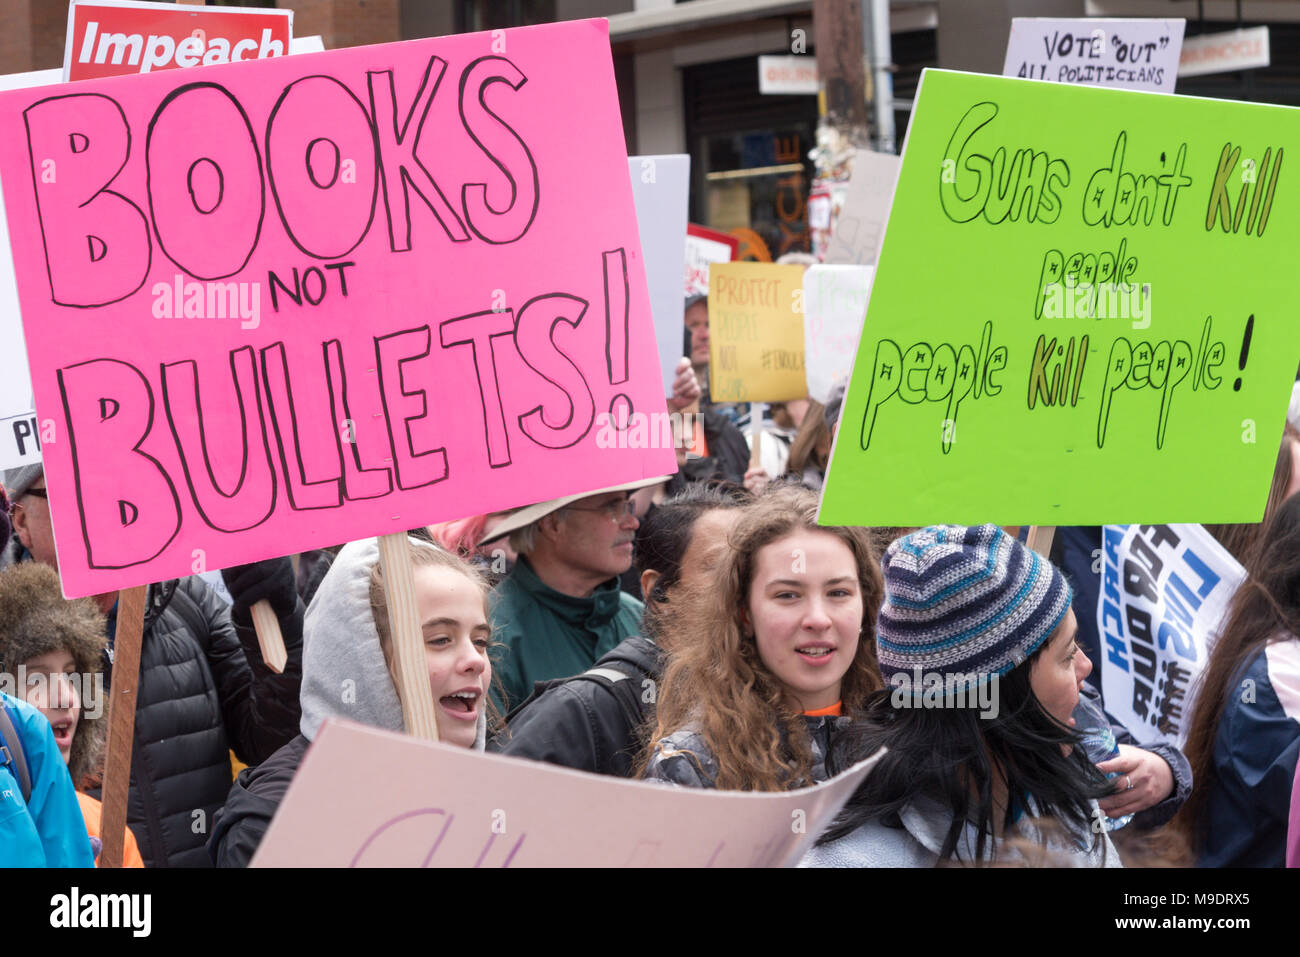 Seattle Washington, March 24th 2018 The March for our Lives rally with many students, children, youth, kids, girls holding their protest guns signs. - Stock Image